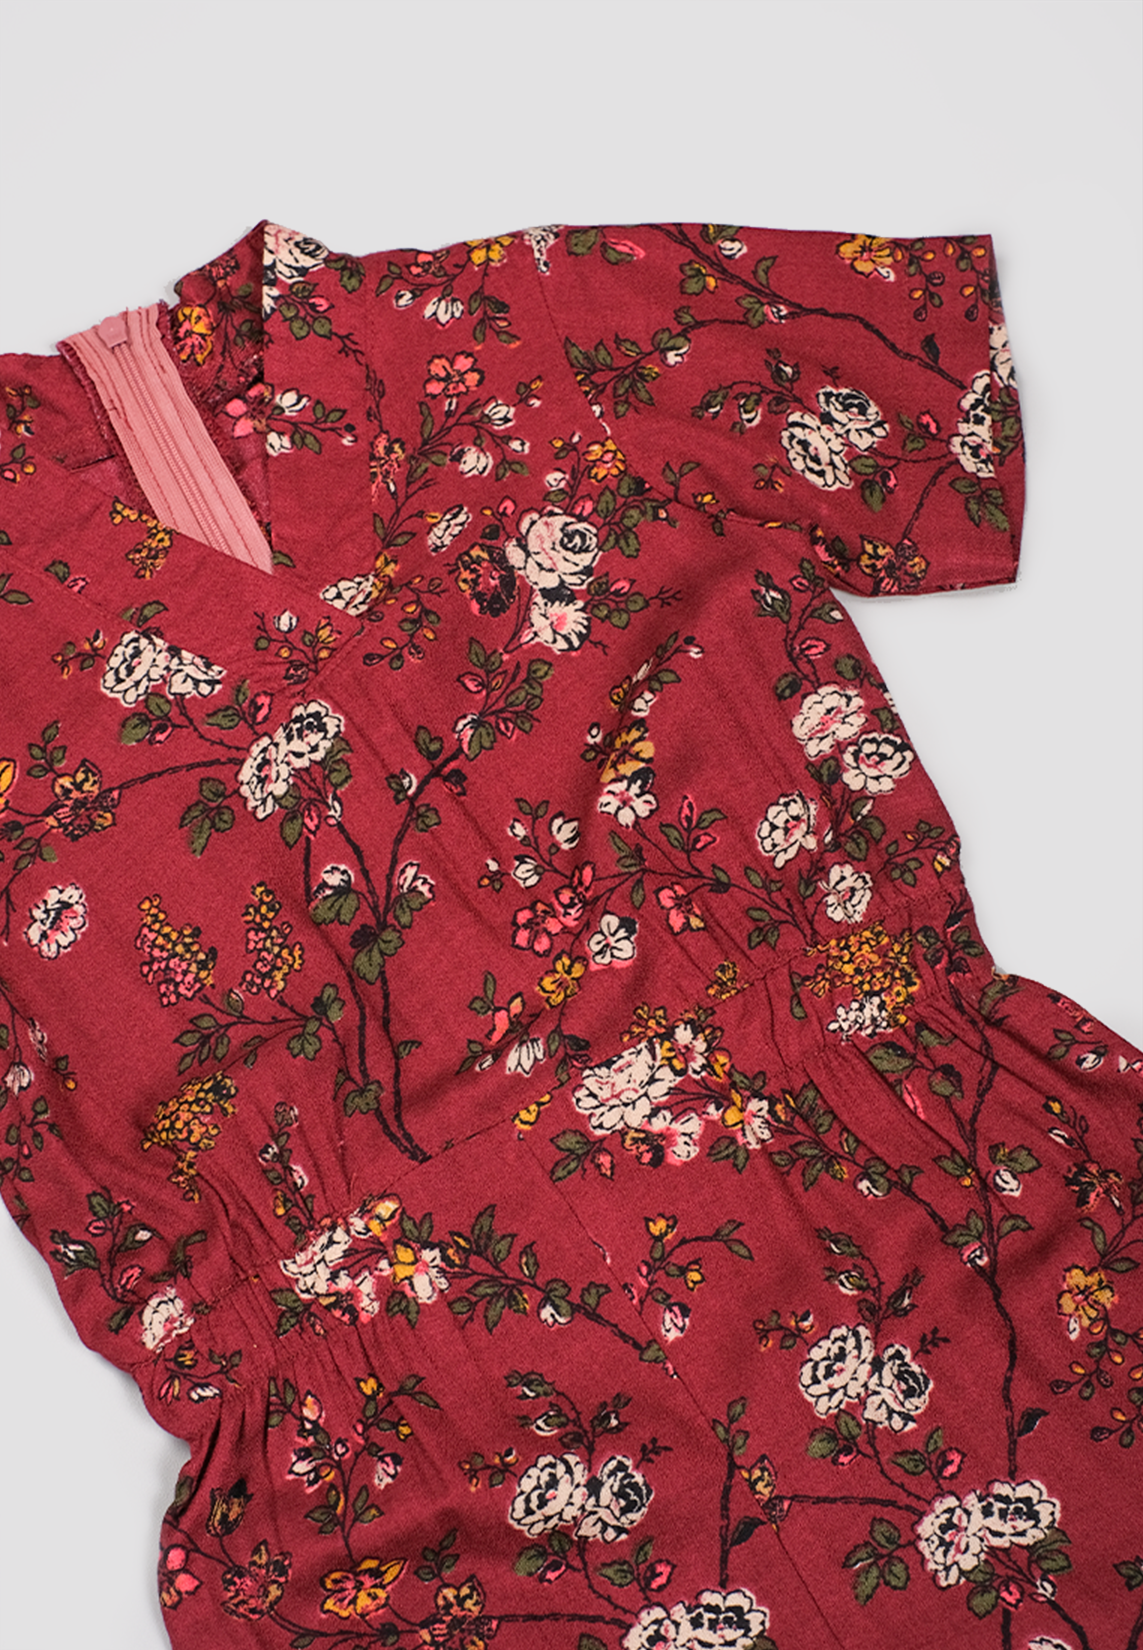 Xiao Jumpsuit Cheongsam Red